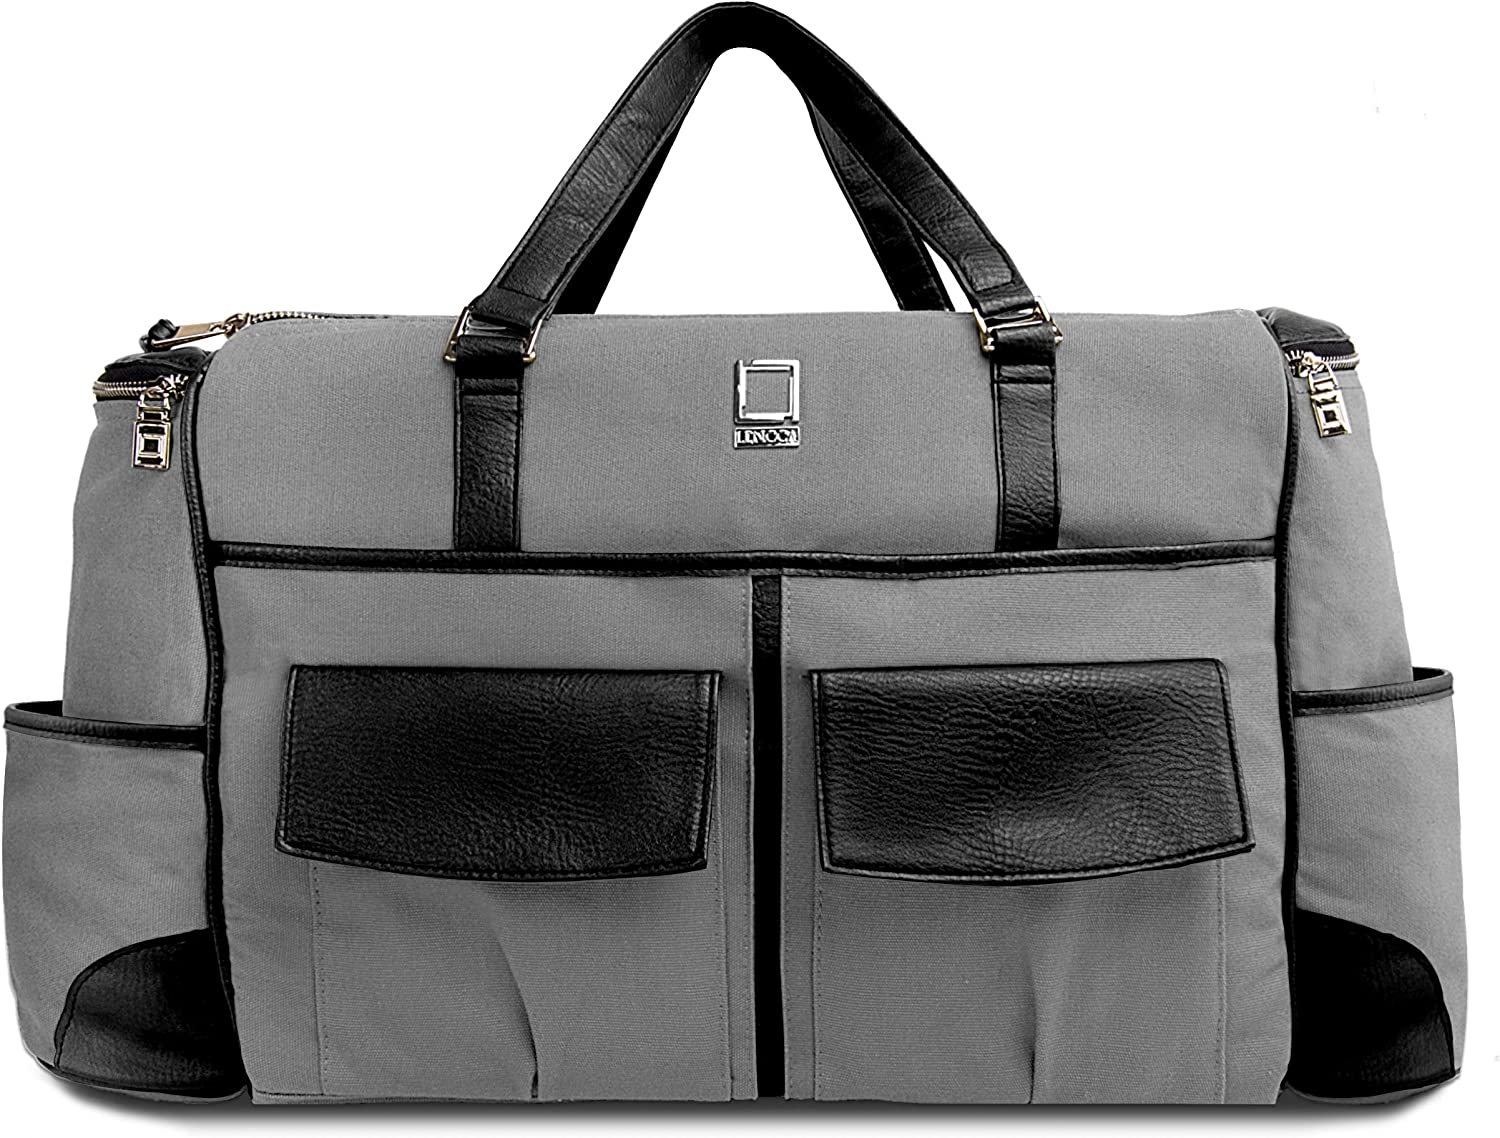 "Alpaque Duffel Bag for up to 15.6"" Laptop- MacBook, Inspiron, Aspire, Satellite, ROG, Flip, ThinkPad, Envy, ATIV Book, &Other"